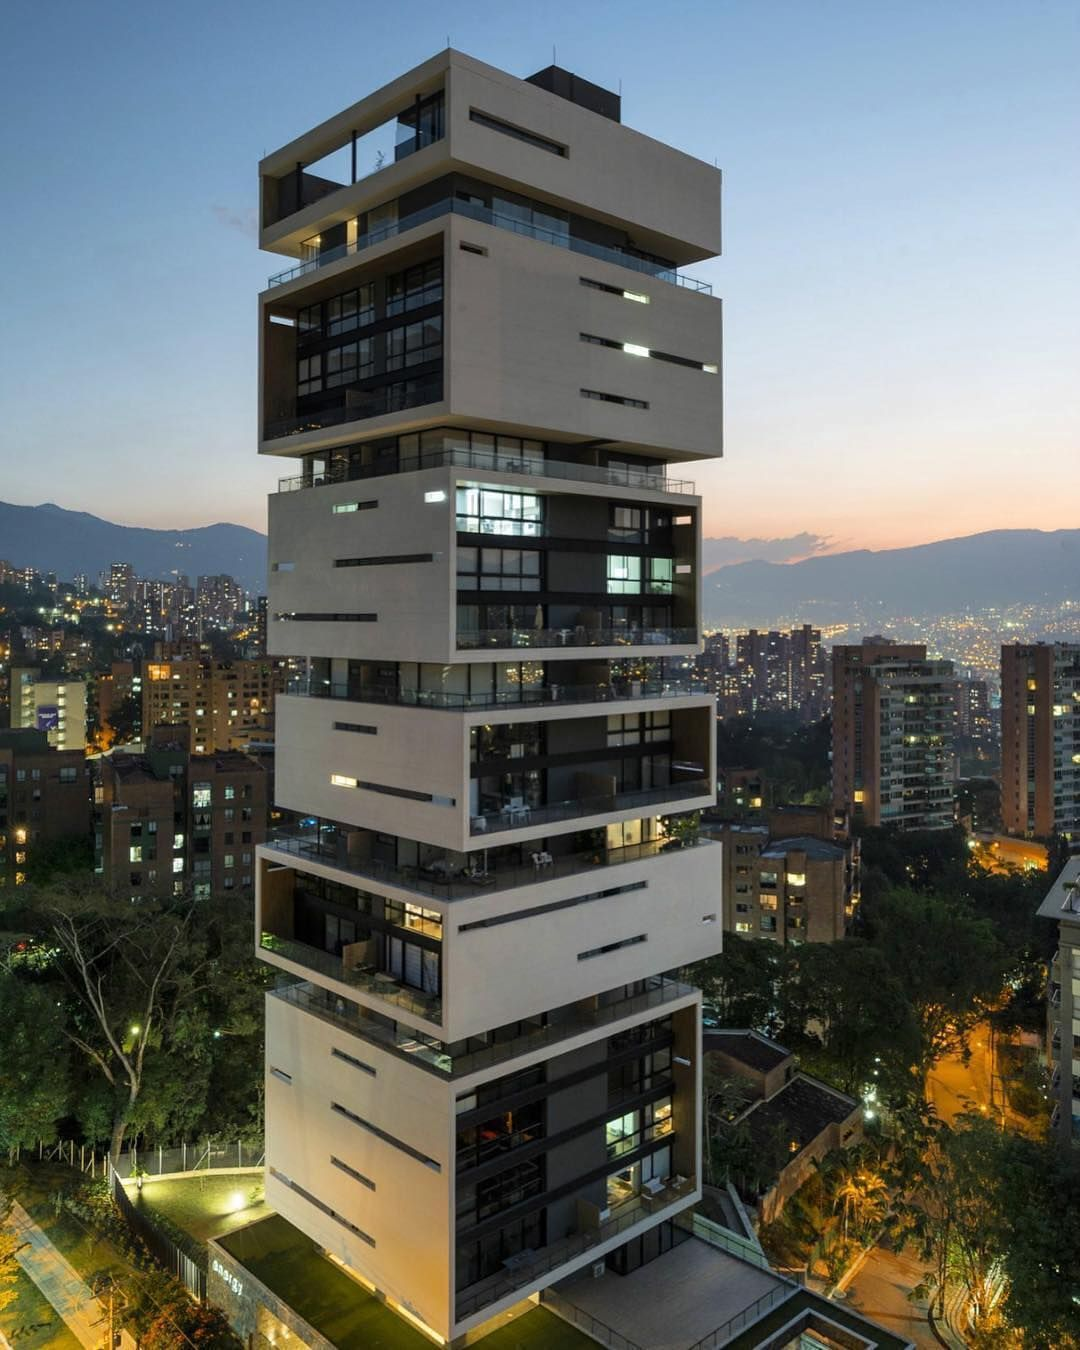 Energy Living in Medellin Colombia - #archidesign #archiphoto ...